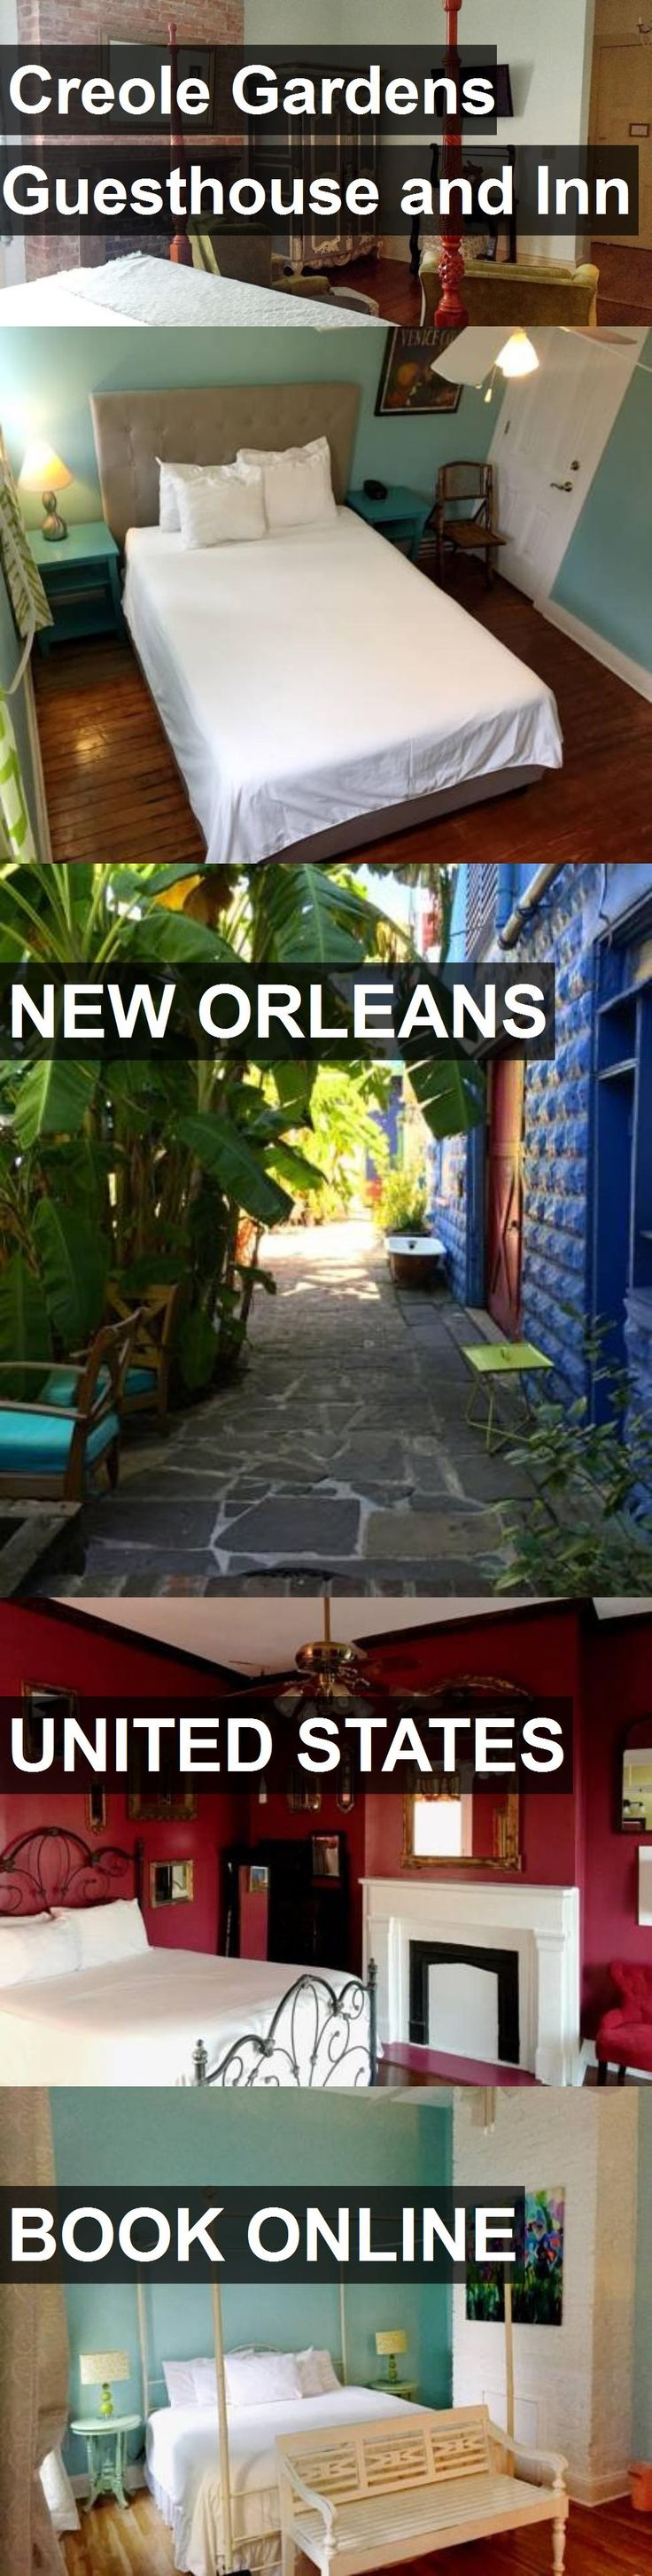 Hotel Creole Gardens Guesthouse and Inn in New Orleans, United States. For more information, photos, reviews and best prices please follow the link. #UnitedStates #NewOrleans #travel #vacation #hotel